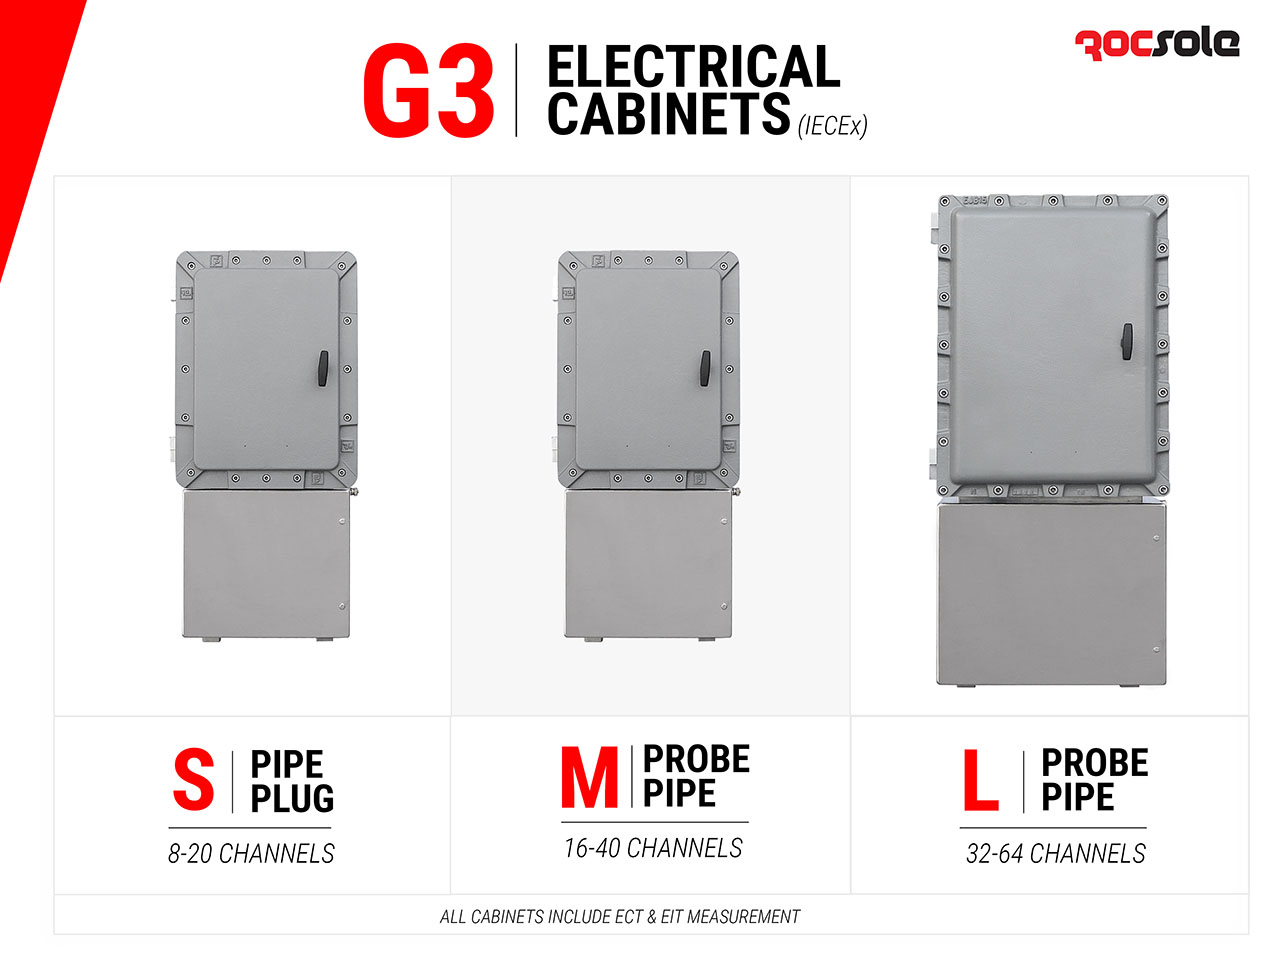 Rocsole - G3 Electrical Cabinets.jpg